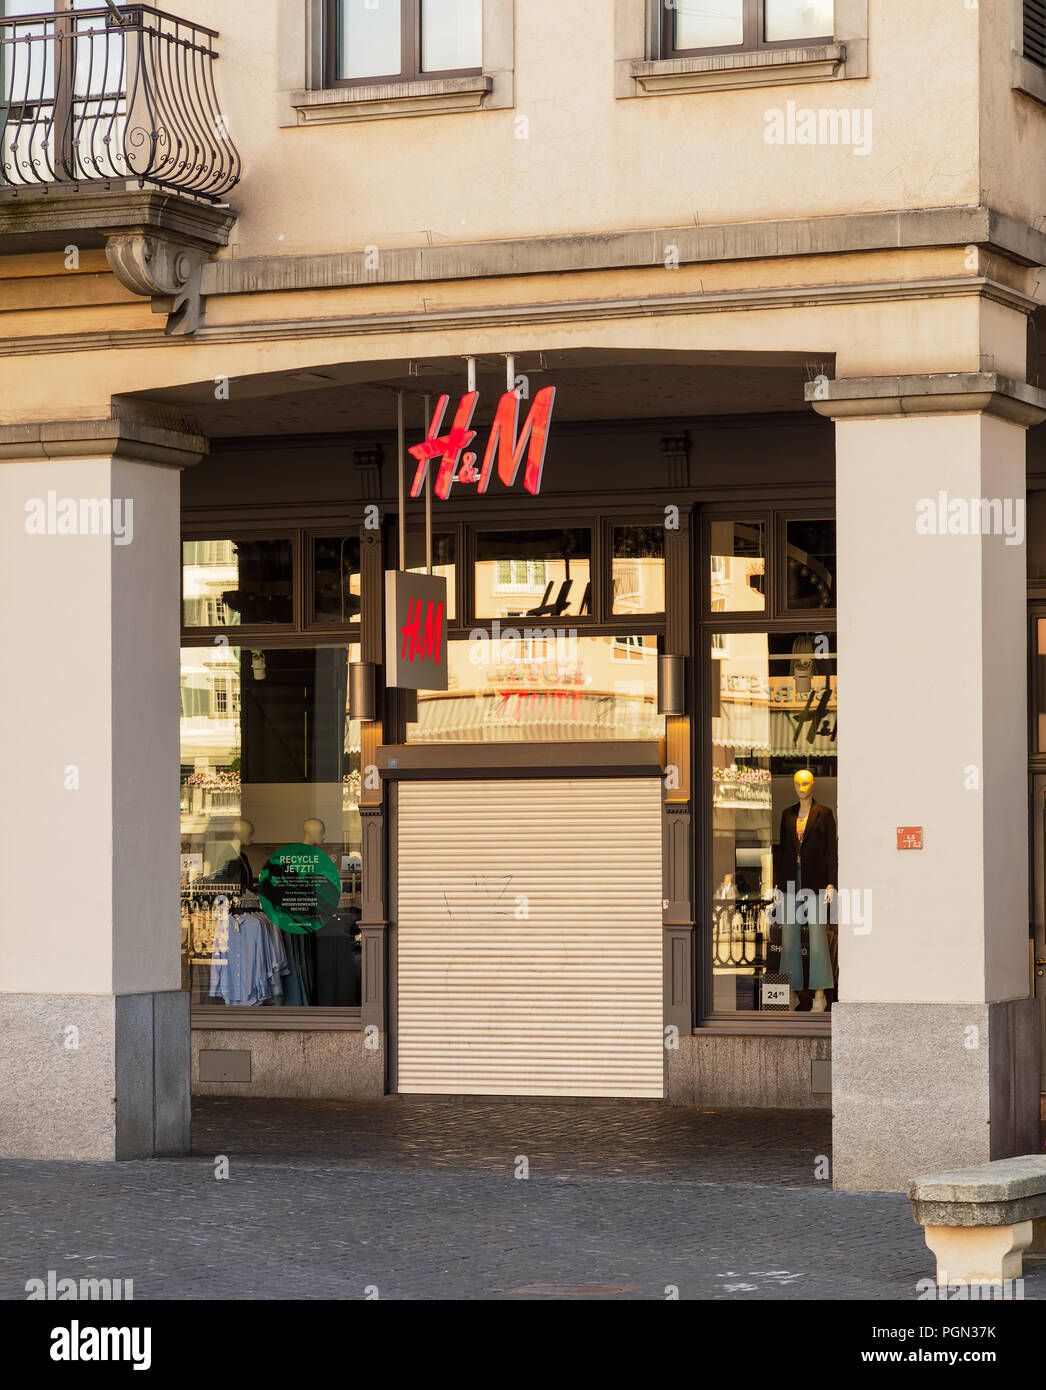 Entrance to the closed on Sunday H&M store on Limmatquai quay in Zurich, Switzerland. - Stock Image